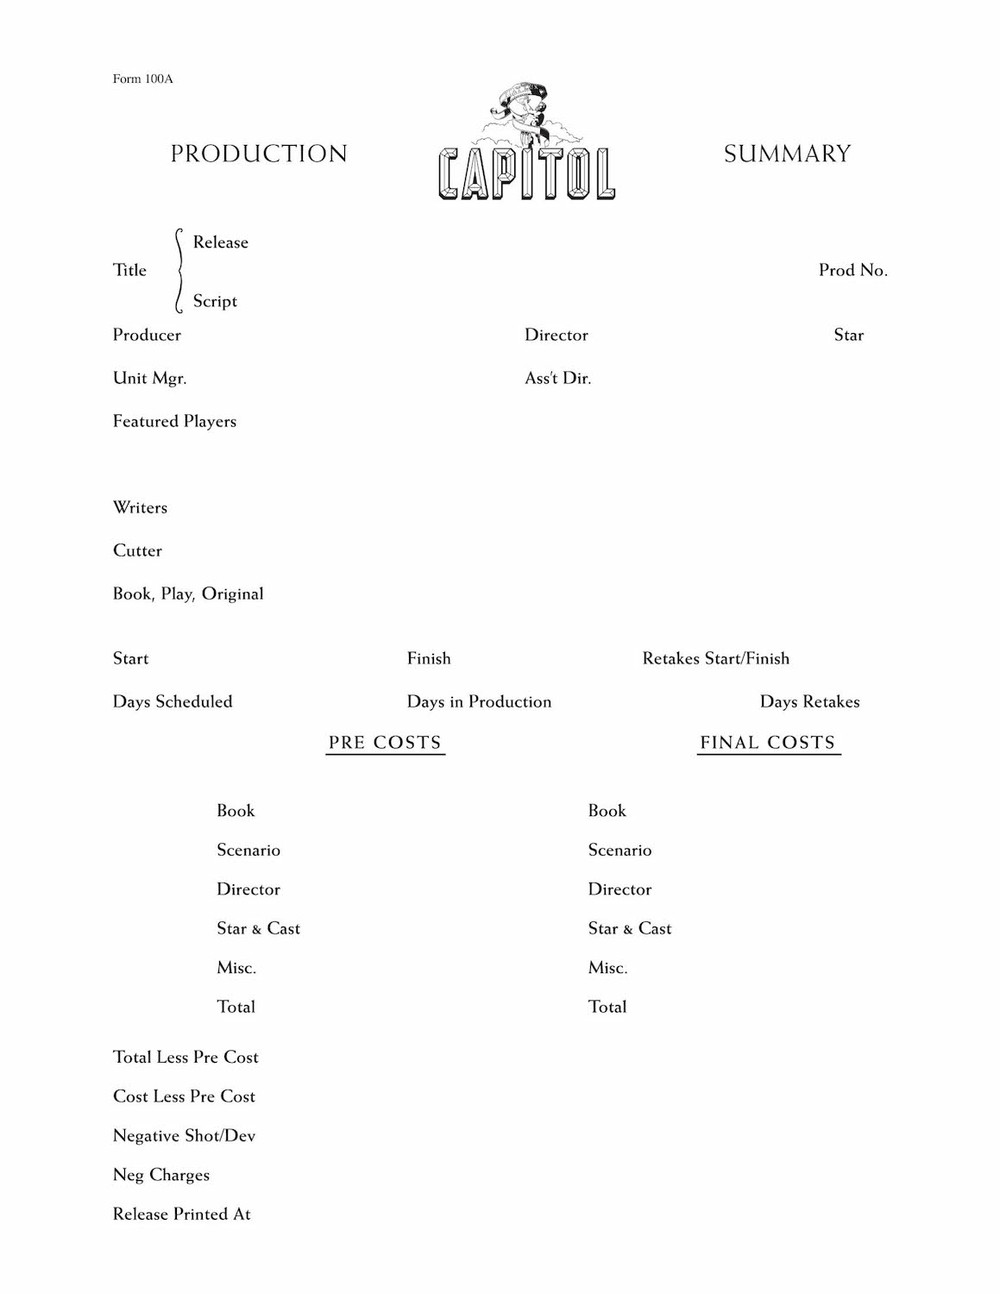 CAPITOL productionsummary template.jpg